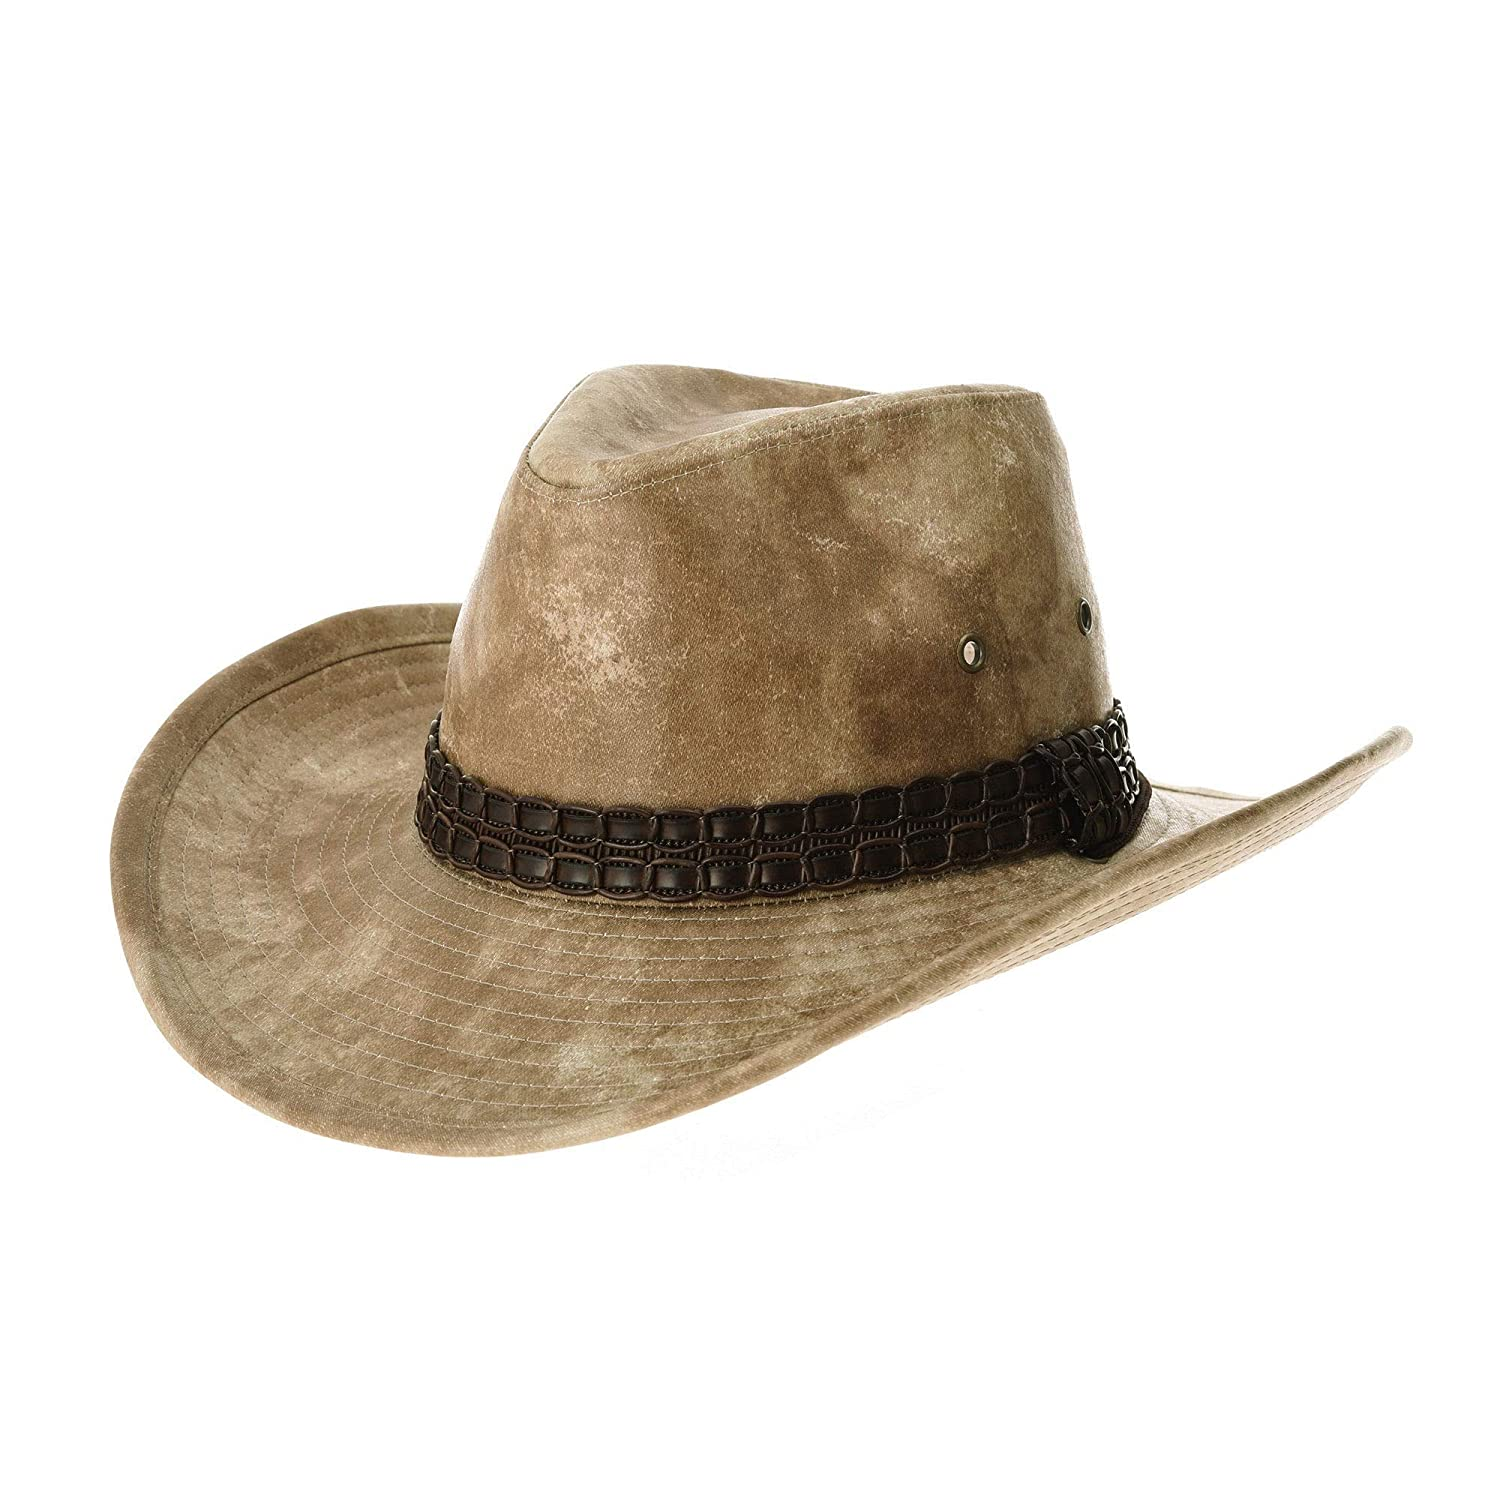 WIM Sombrero de Cowboy Indiana Jones Hat Weathered Faux Leather Outback Hat GN8749